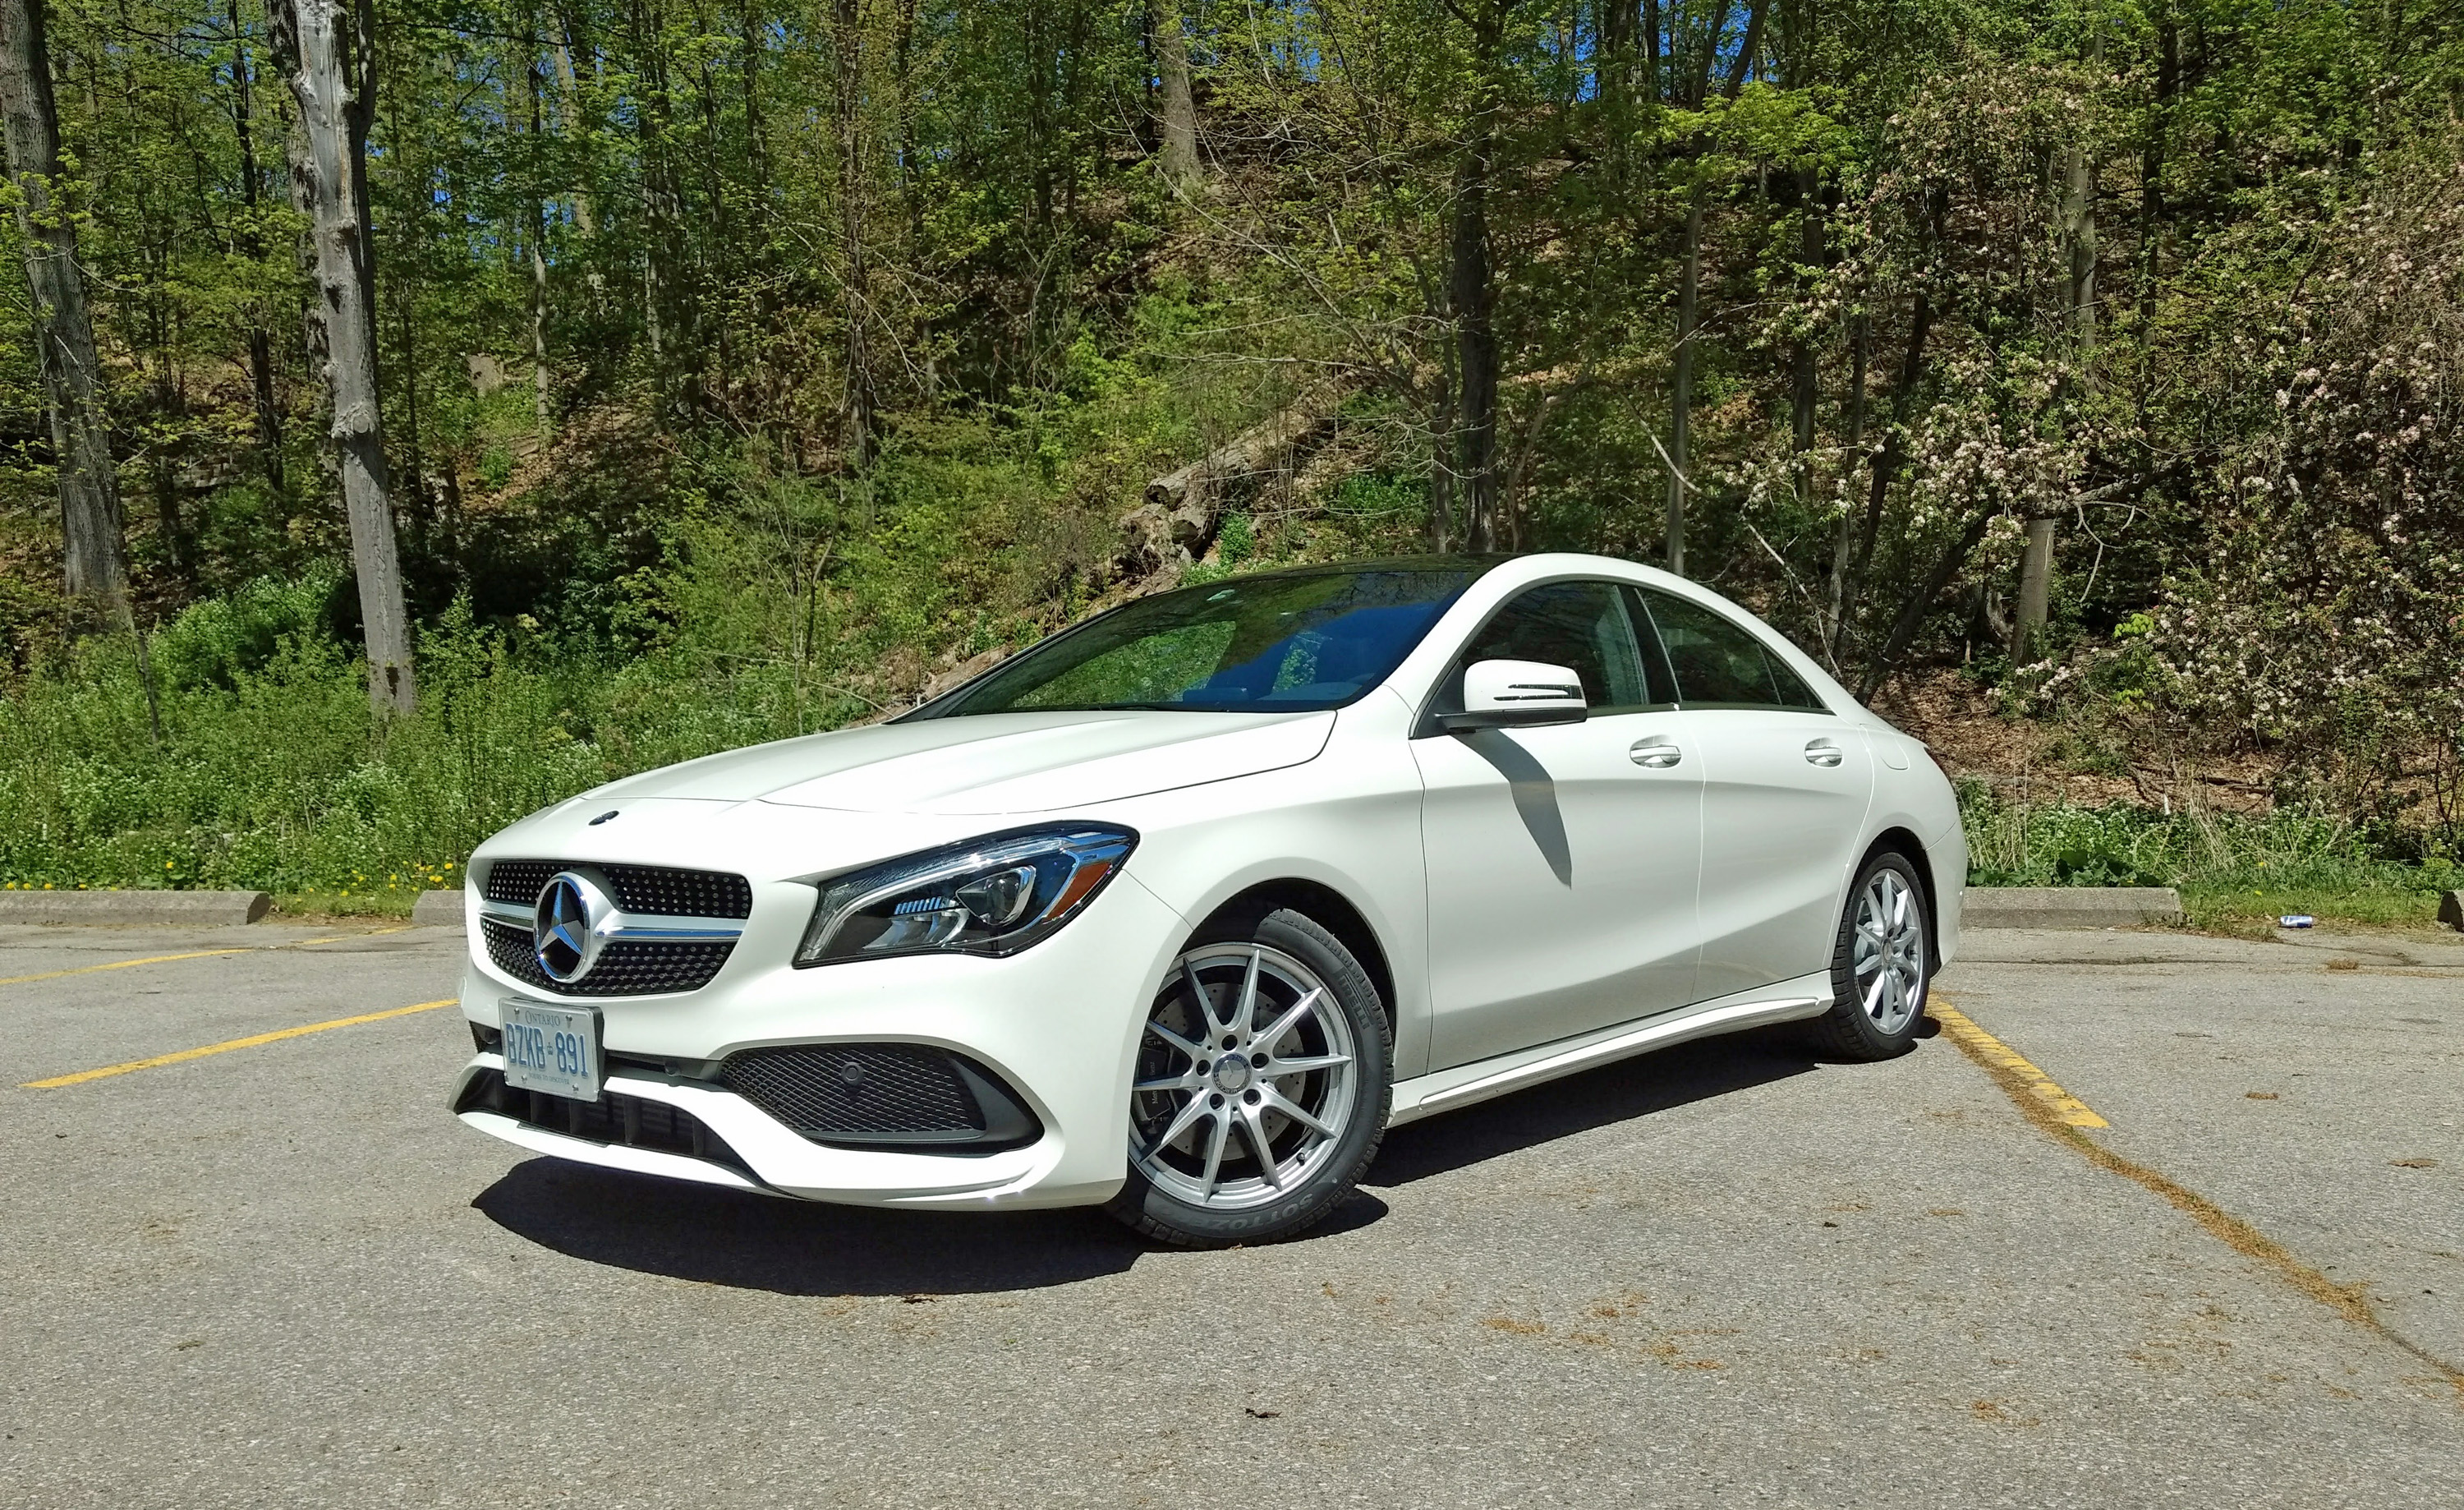 2017 mercedes benz cla 250 4matic review news for Mercedes benz cls 250 price